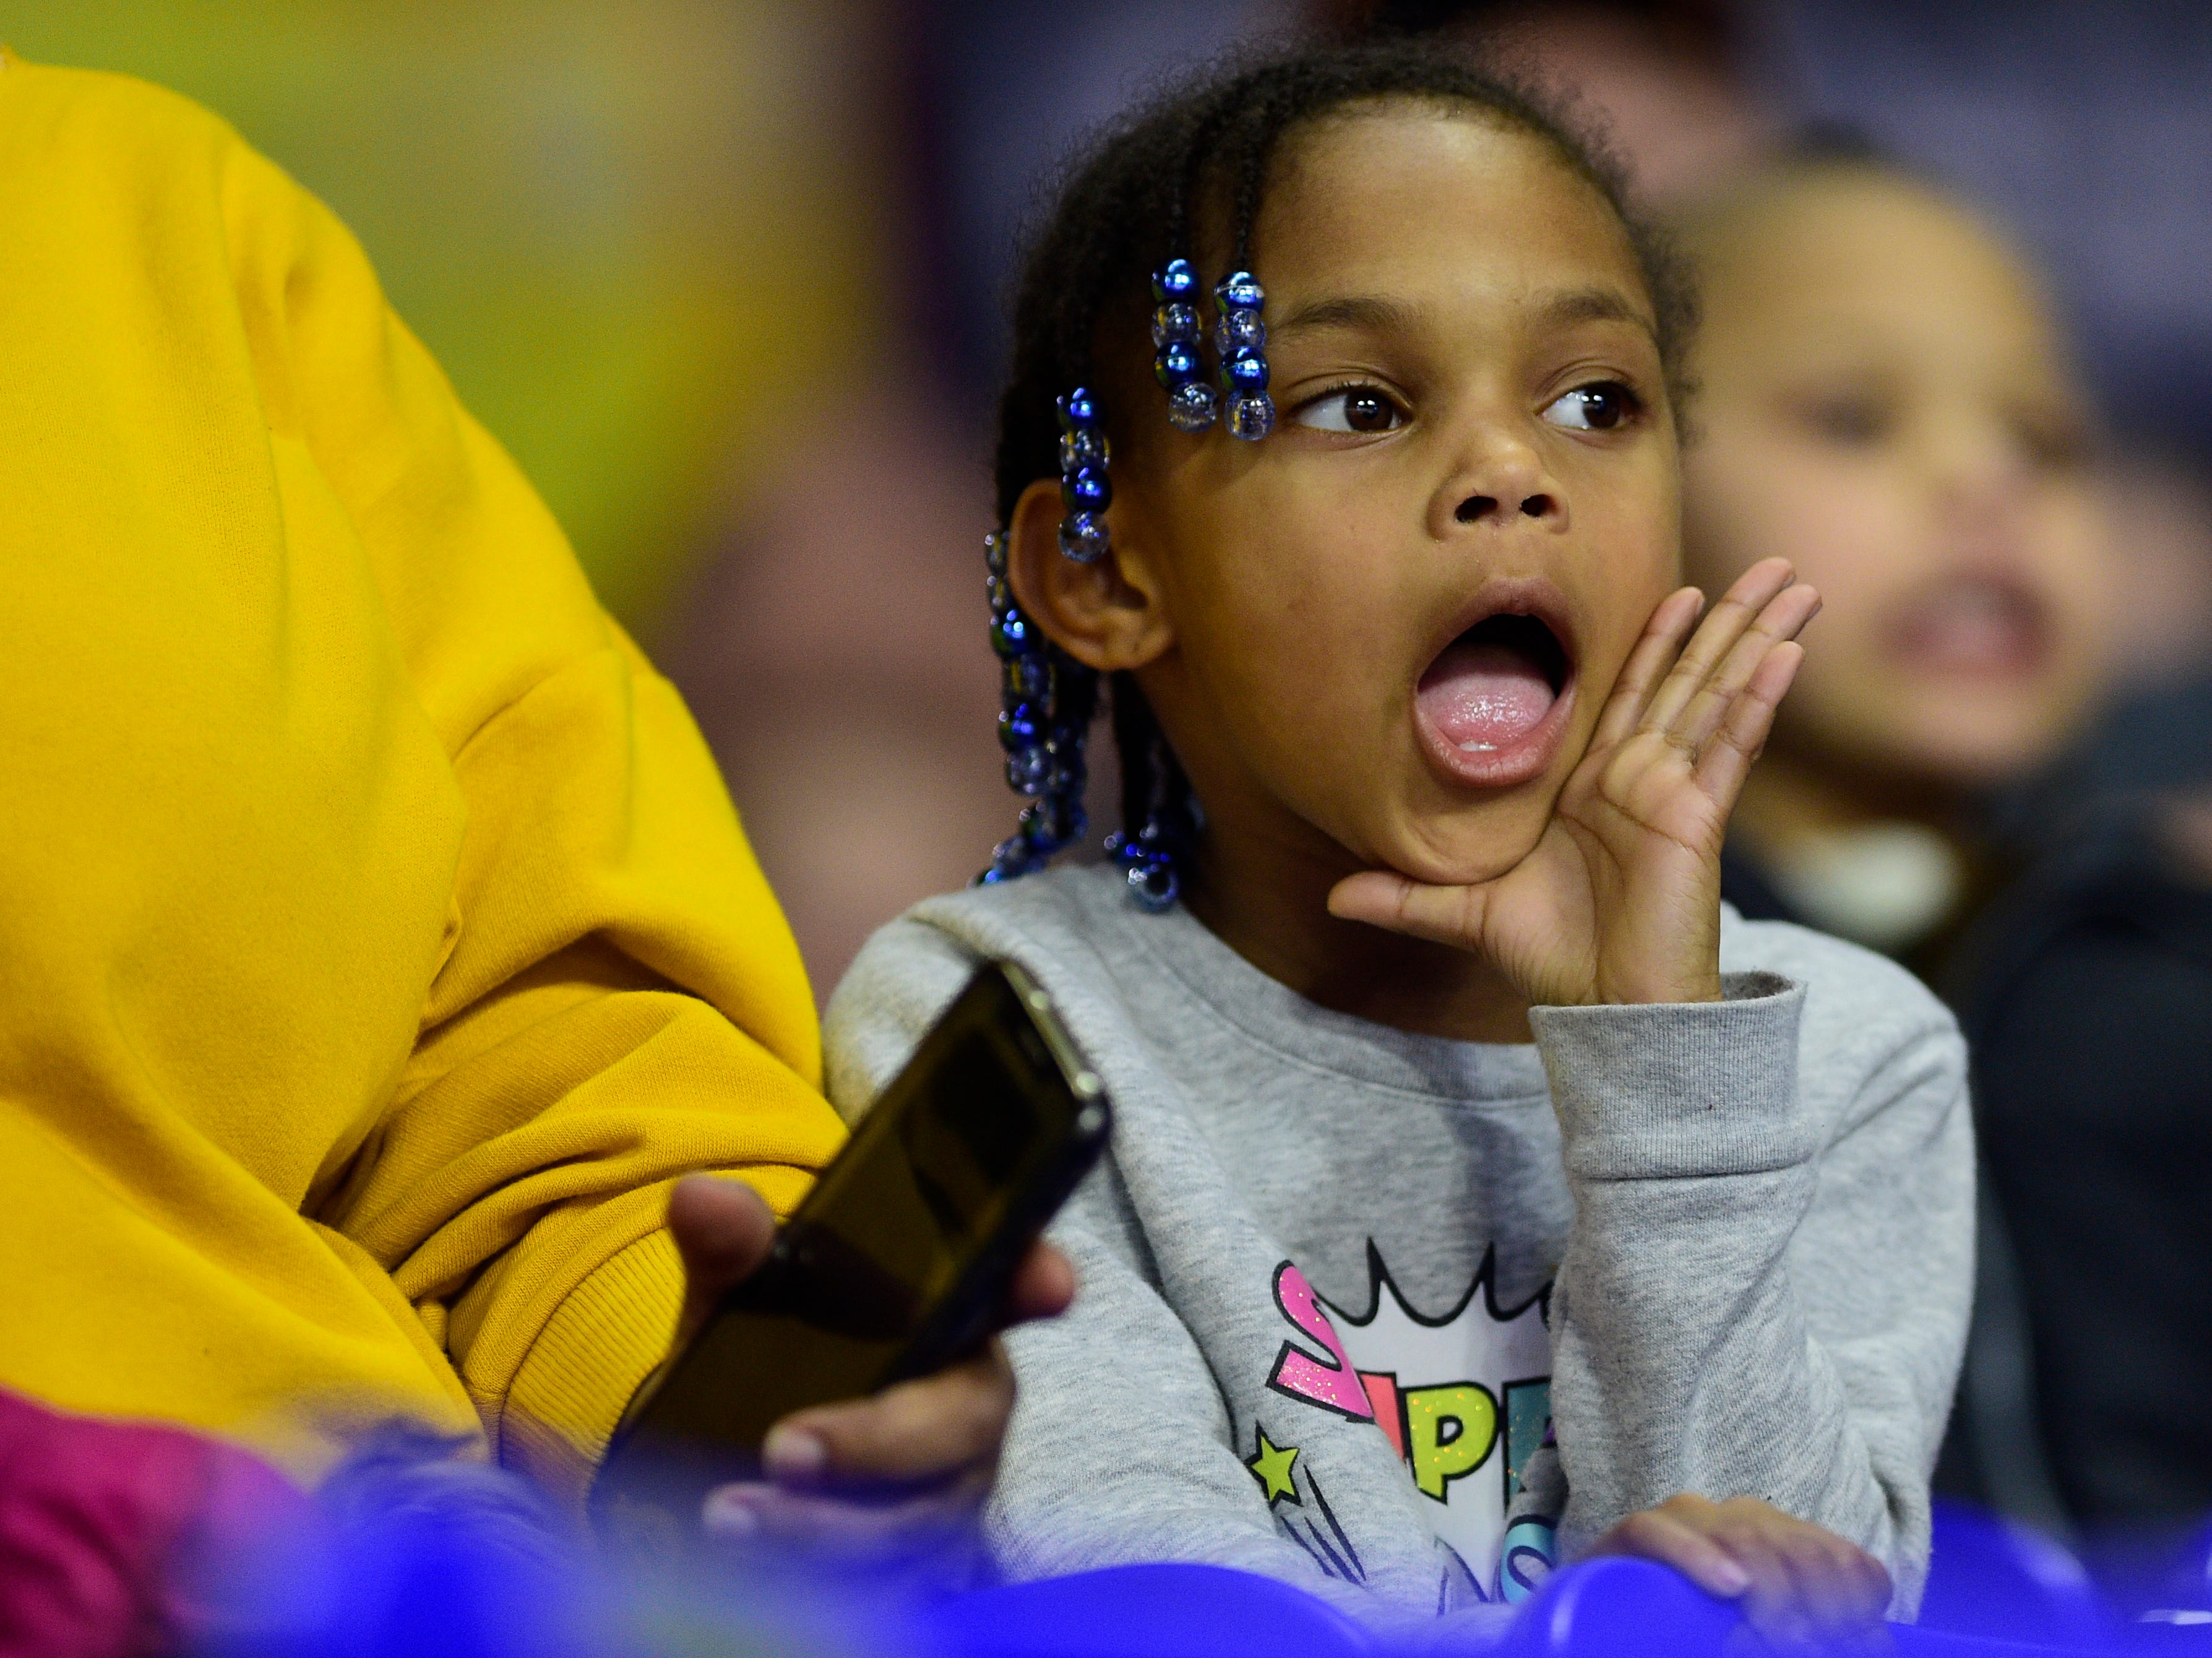 A young Oak Ridge fan cheers during a game between Oak Ridge and Bradley Central at the TSSAA girls state tournament at the Murphy Center in Murfreesboro, Tennessee on Friday, March 8, 2019.